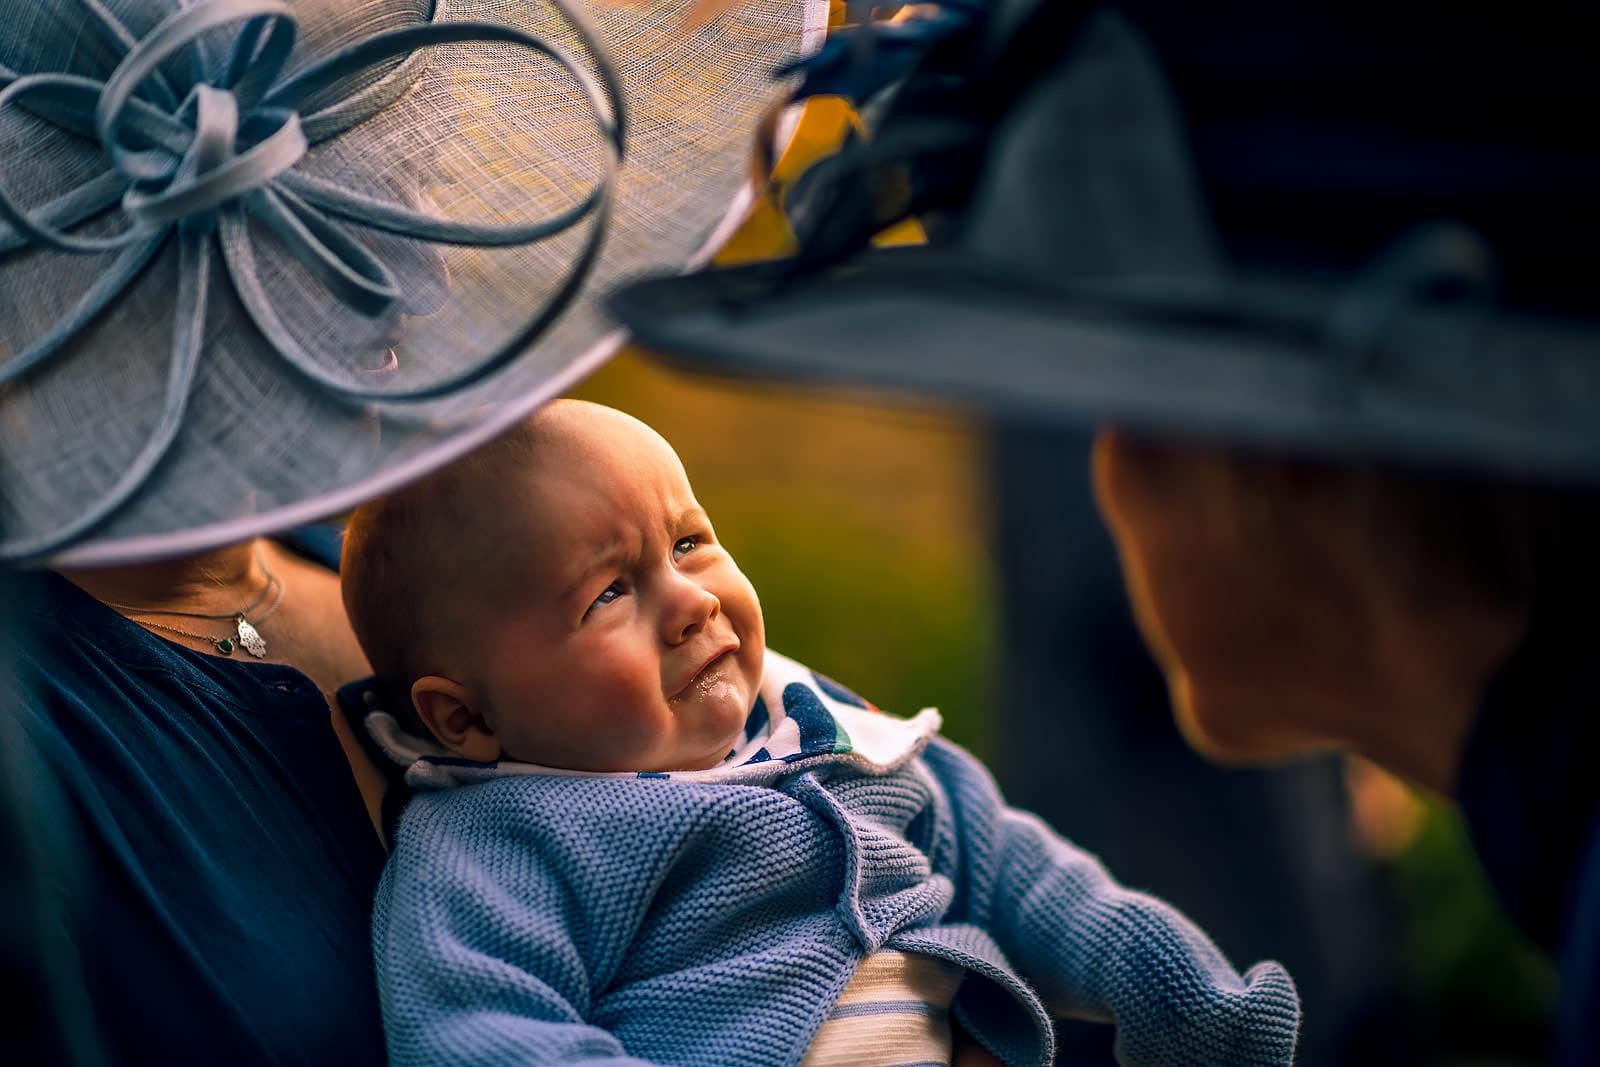 Baby crying at the wedding